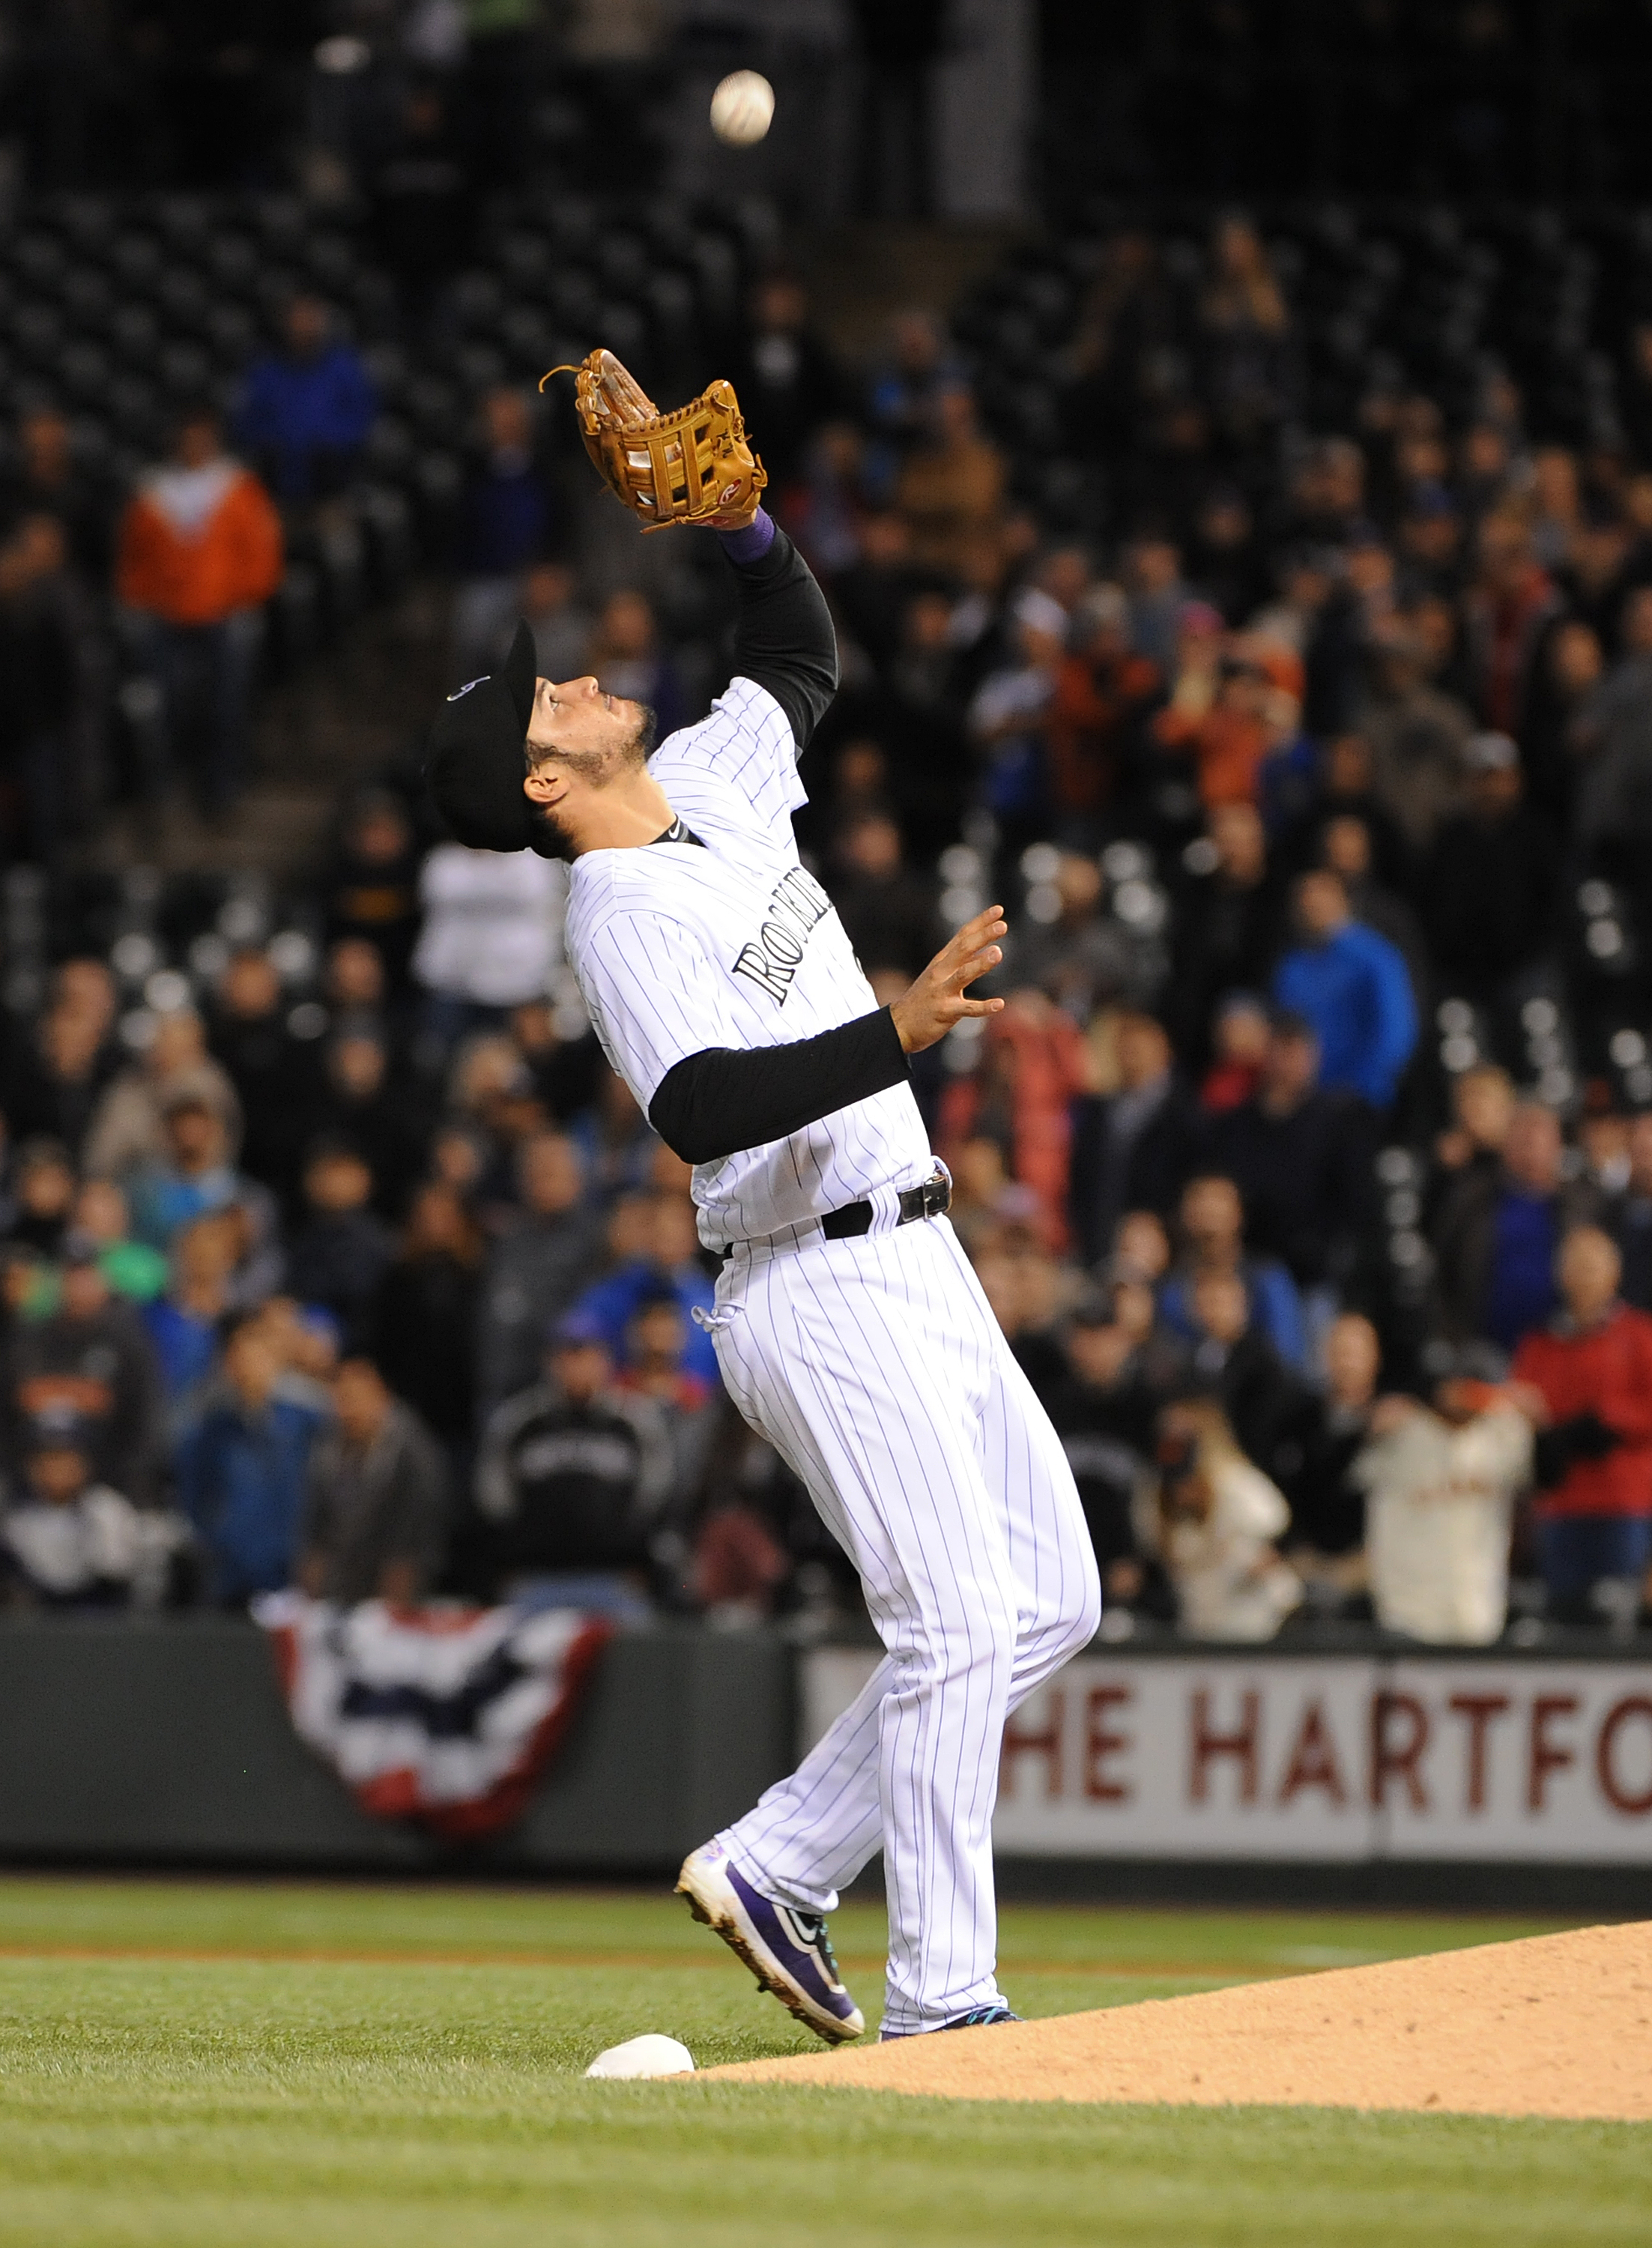 Nolan Arenado of the Colorado Rockies makes the catch for the final out against the San Francisco Giants at Coors Field on May 27, 2016. (credit: Bart Young/Getty Images)